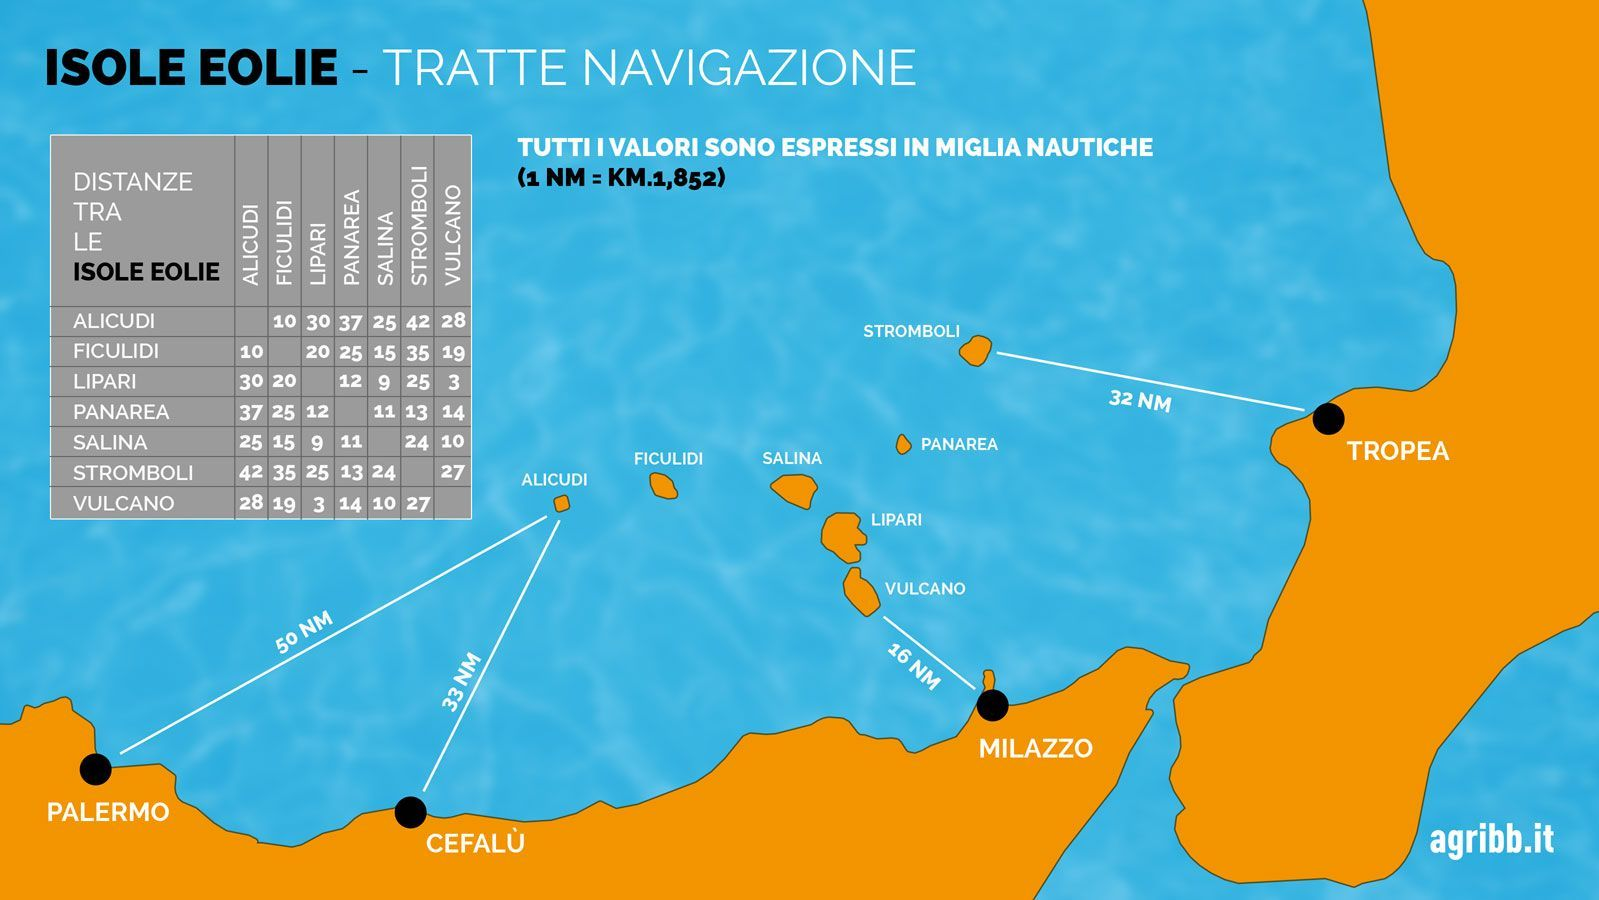 Distanze tra le isole Eolie